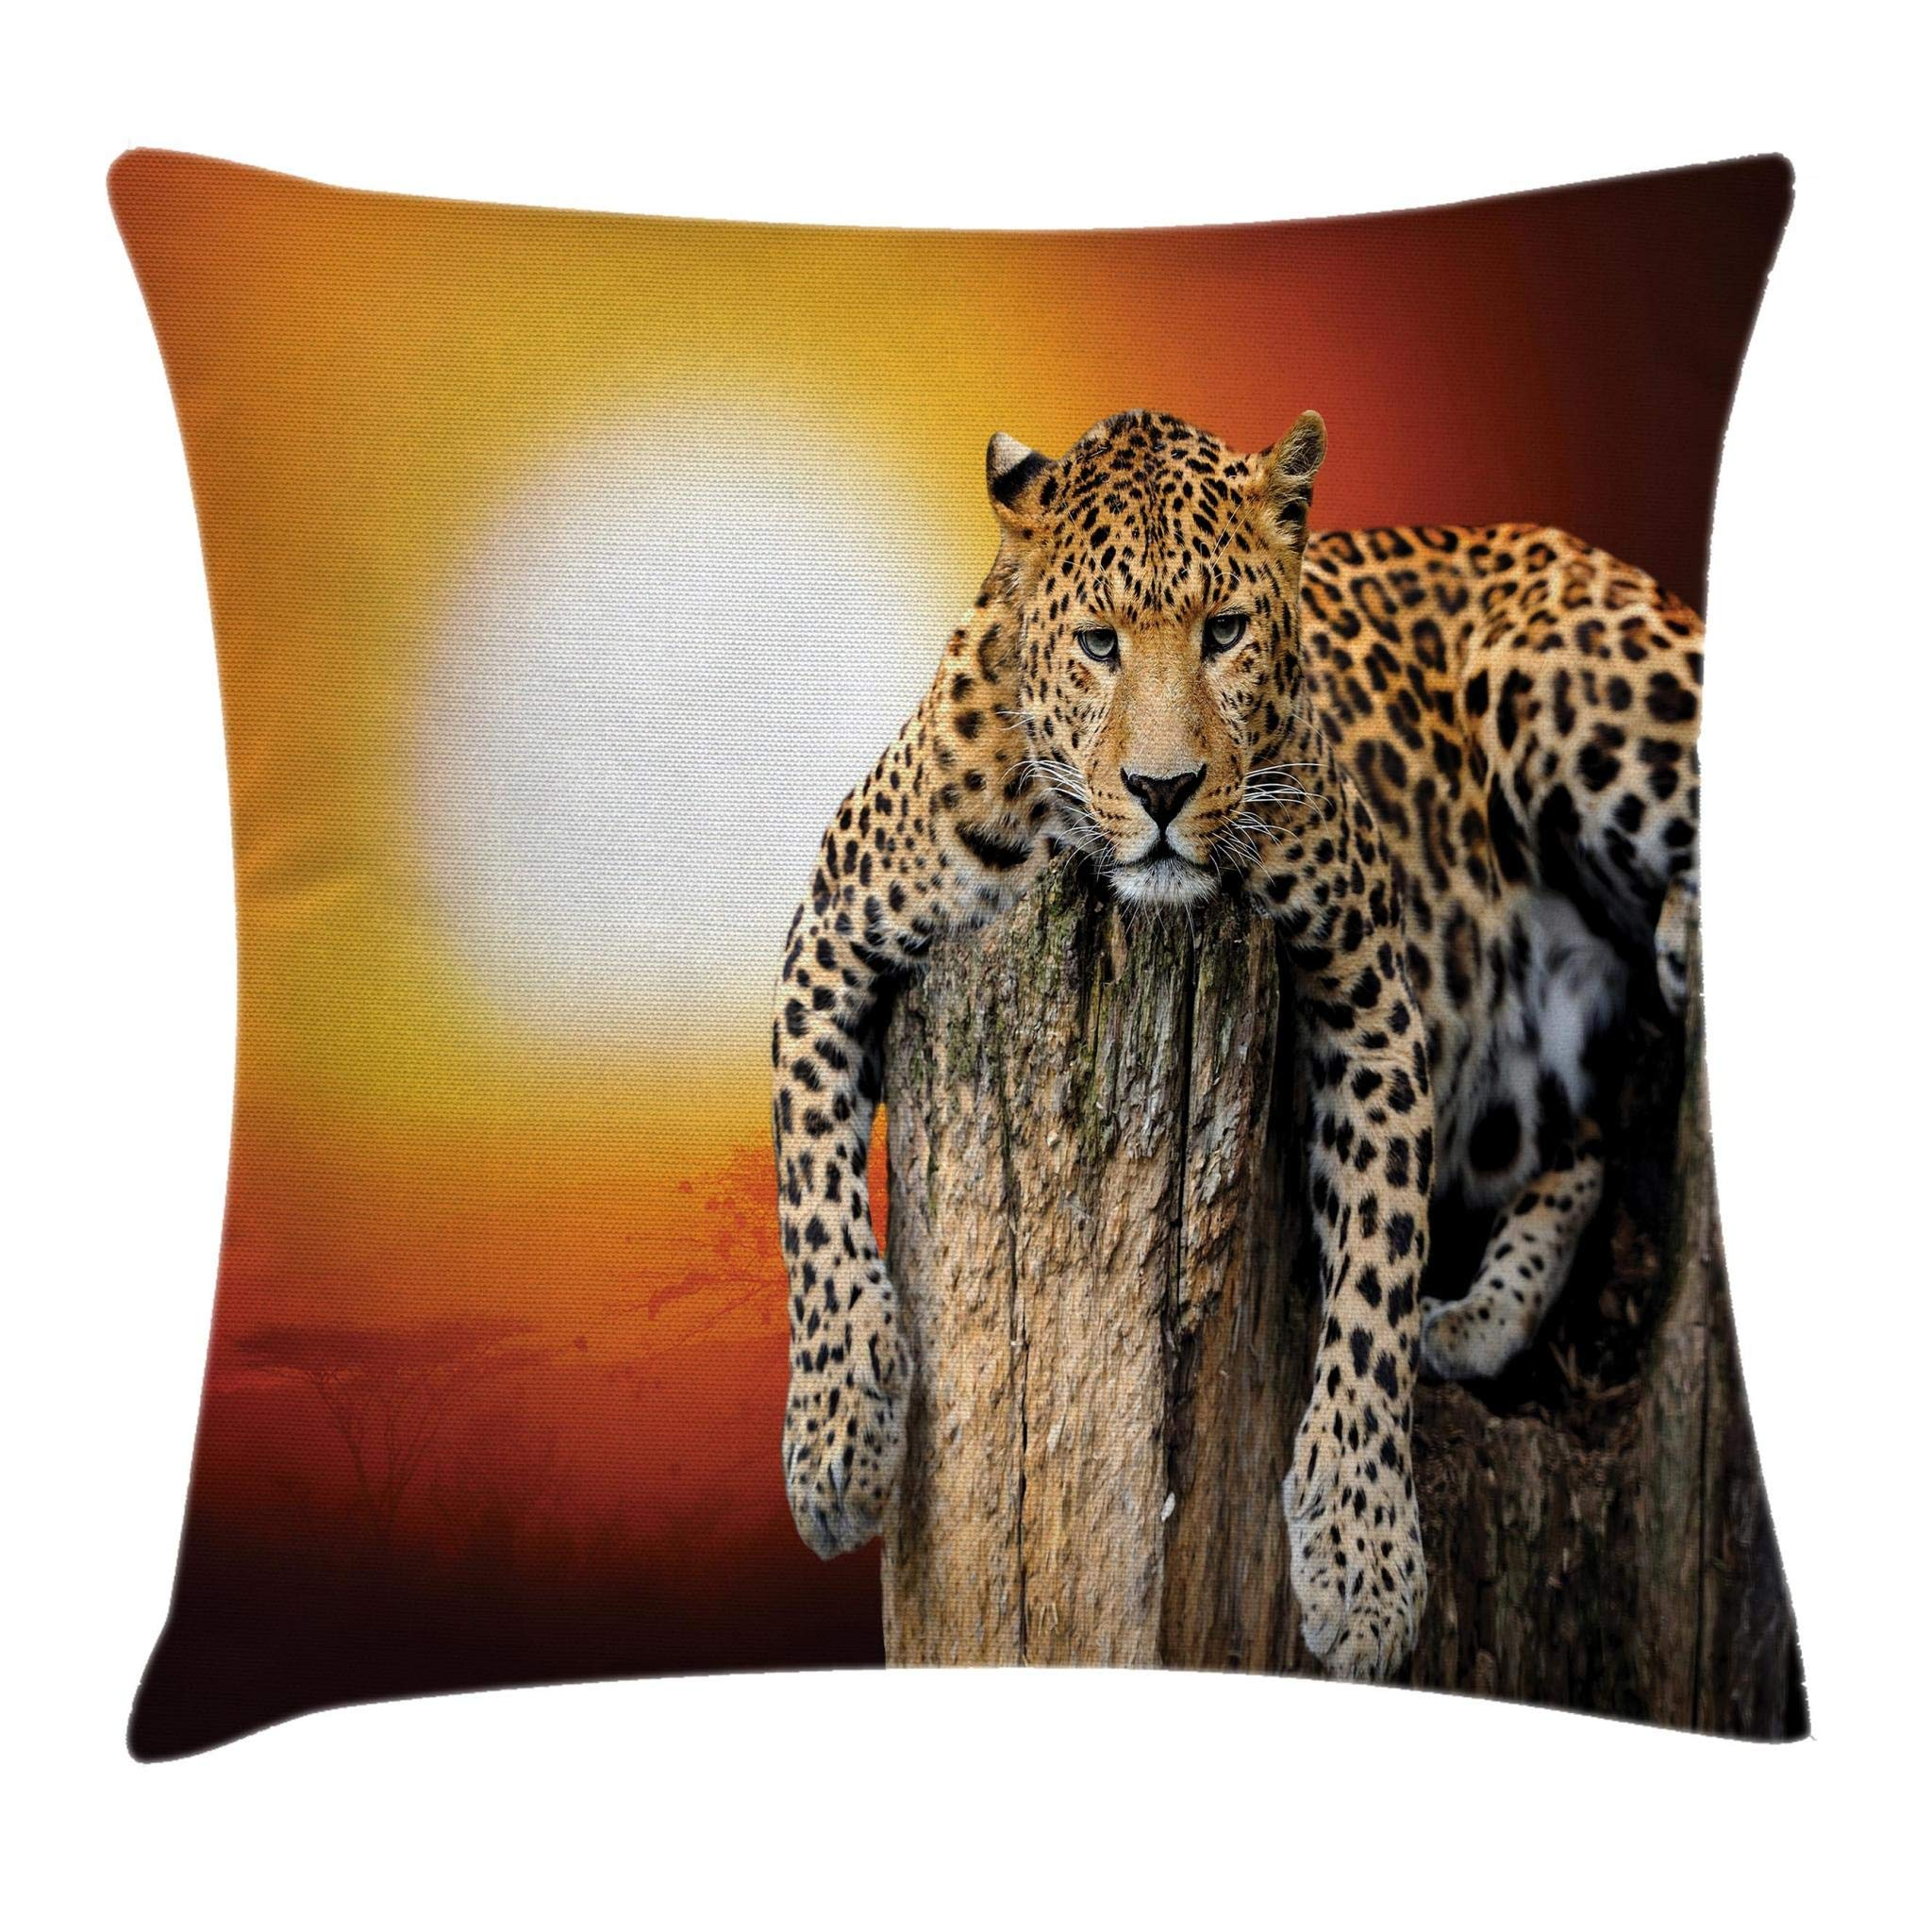 Ambesonne Safari Throw Pillow Cushion Cover, Leopard Sitting on Dry Tree at Sunset Danger in The Air Big Cat with Spotted Form, Decorative Square Accent Pillow Case, 18'' X 18'', Orange Brown